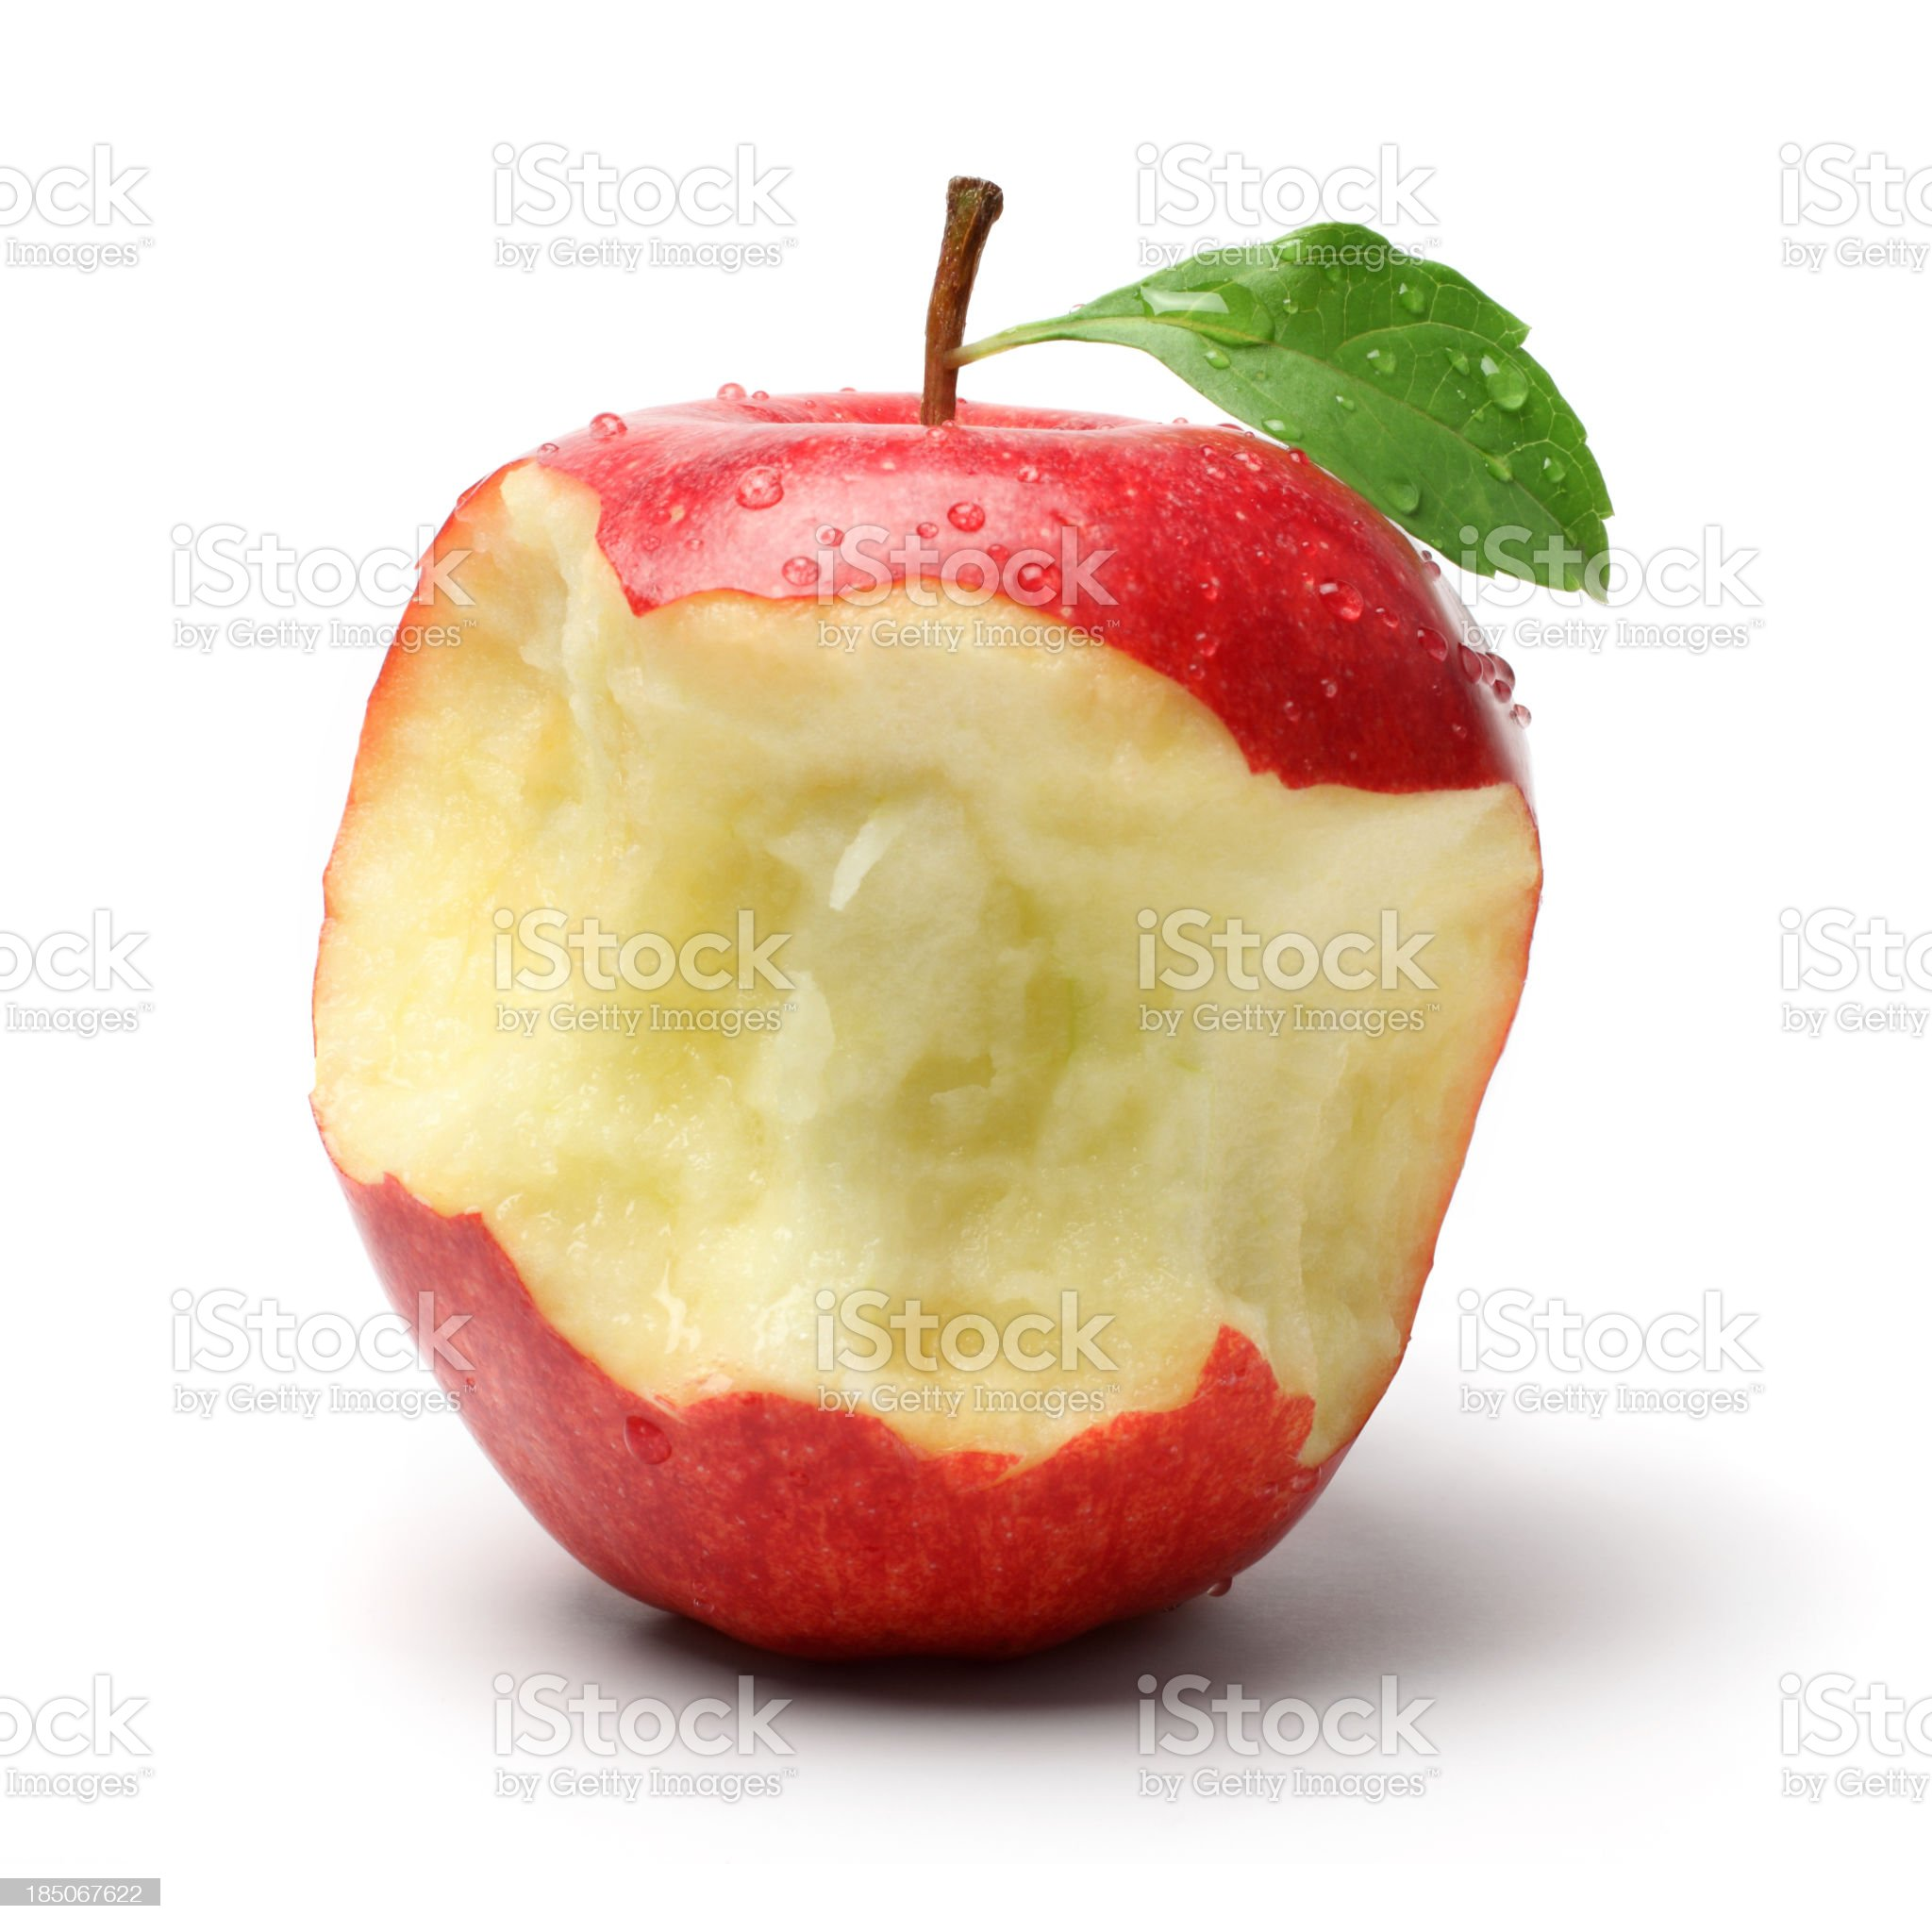 Several Bites on a Red Apple royalty-free stock photo